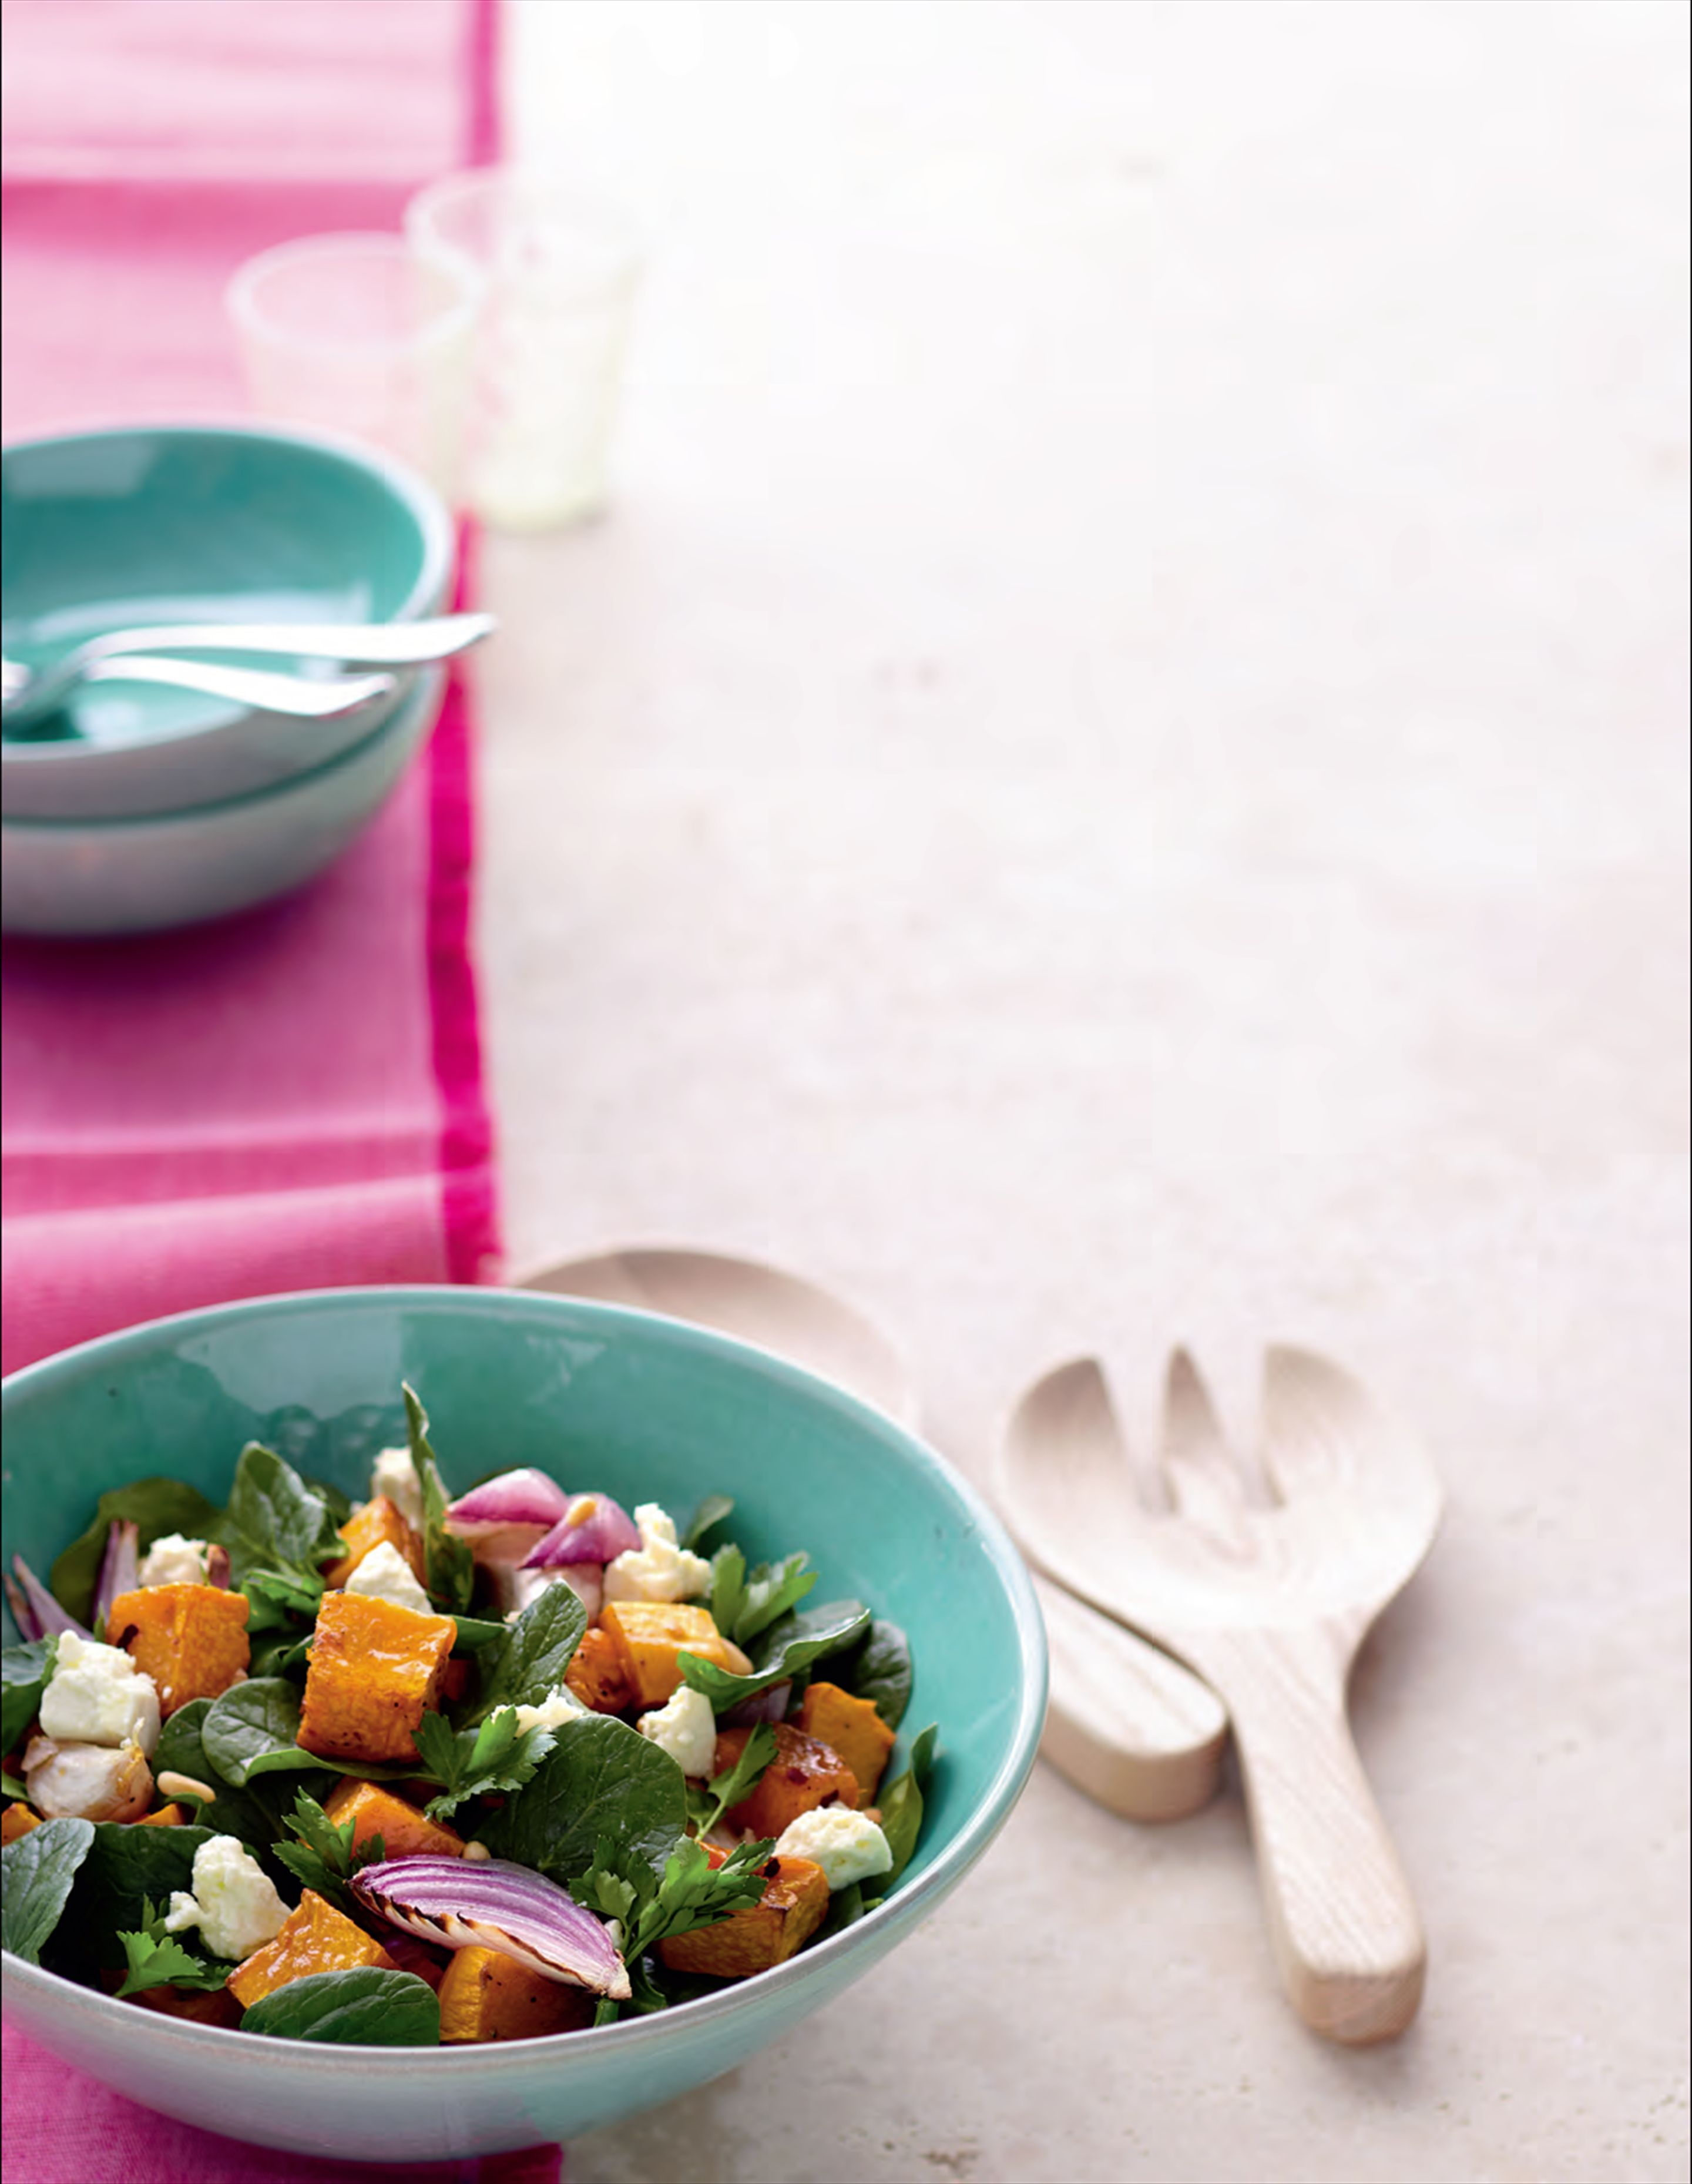 Warm pumpkin and spinach salad